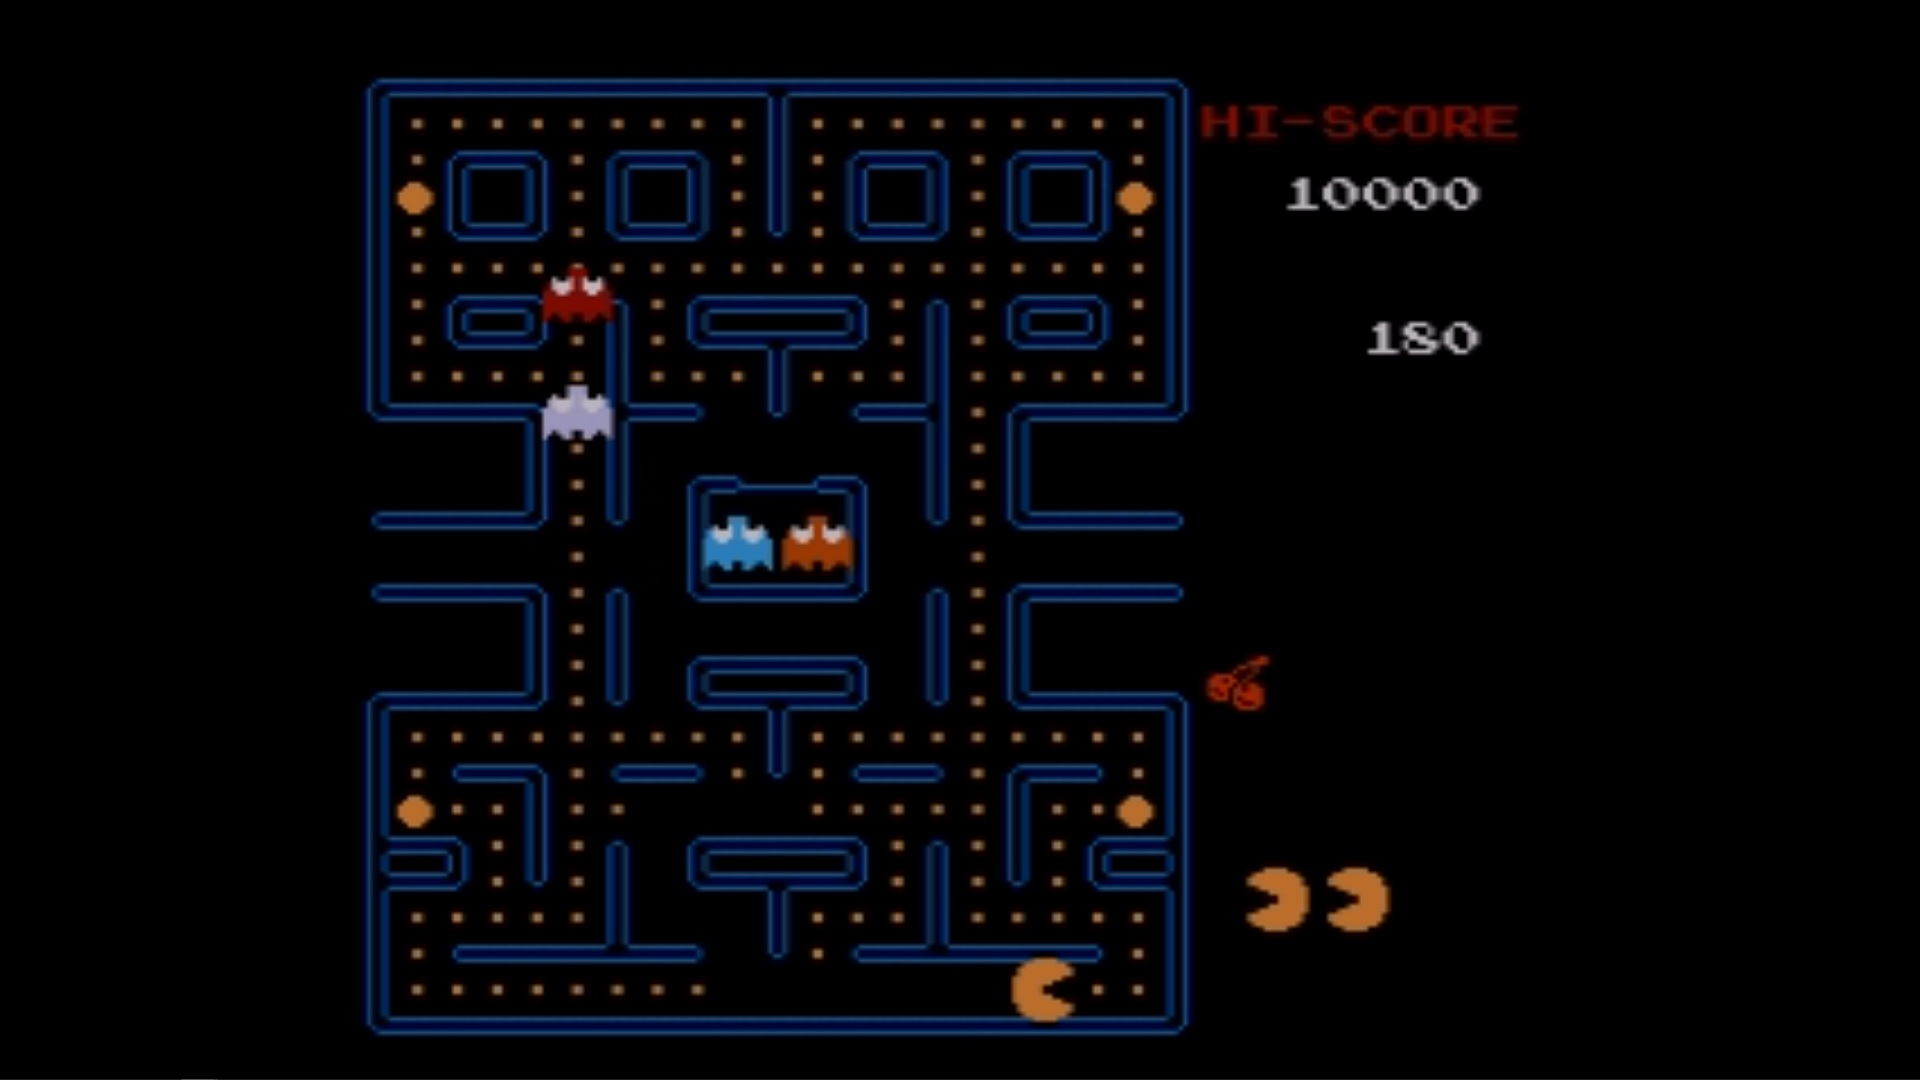 World Records for Donkey Kong and Pac-Man Still Stand